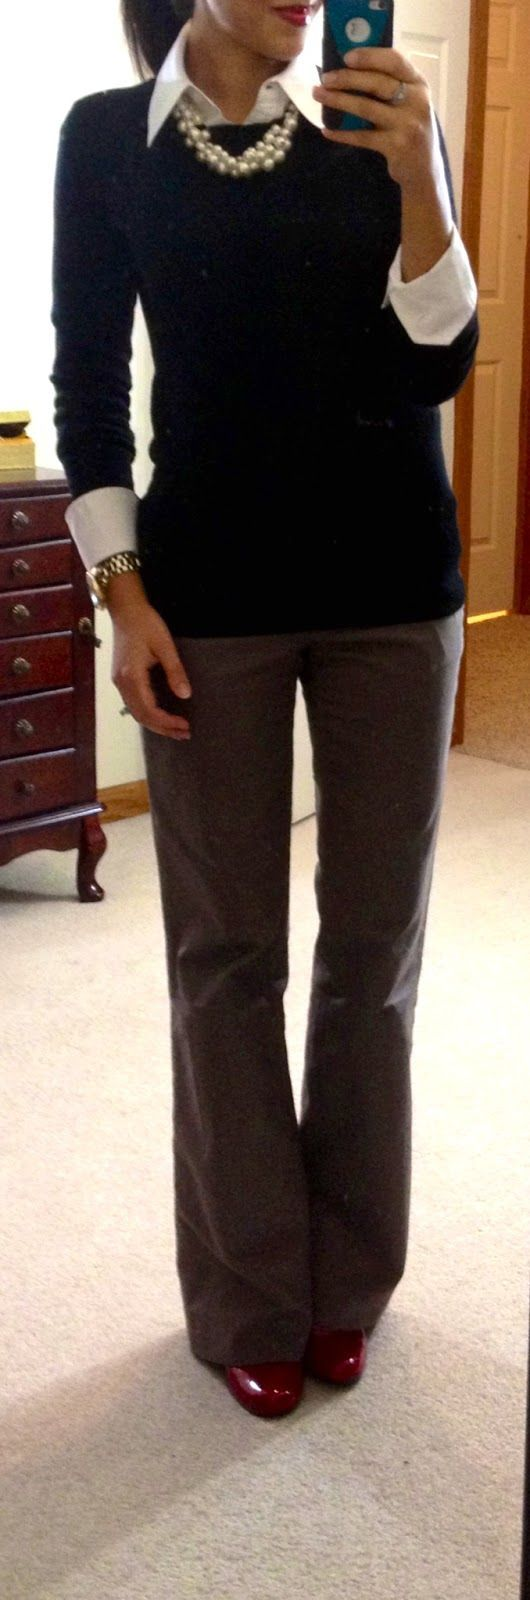 I adore this entire stitch fix outfit!! Light weight sweater, collared shirt, awesome fit for work pants...I want it all!!